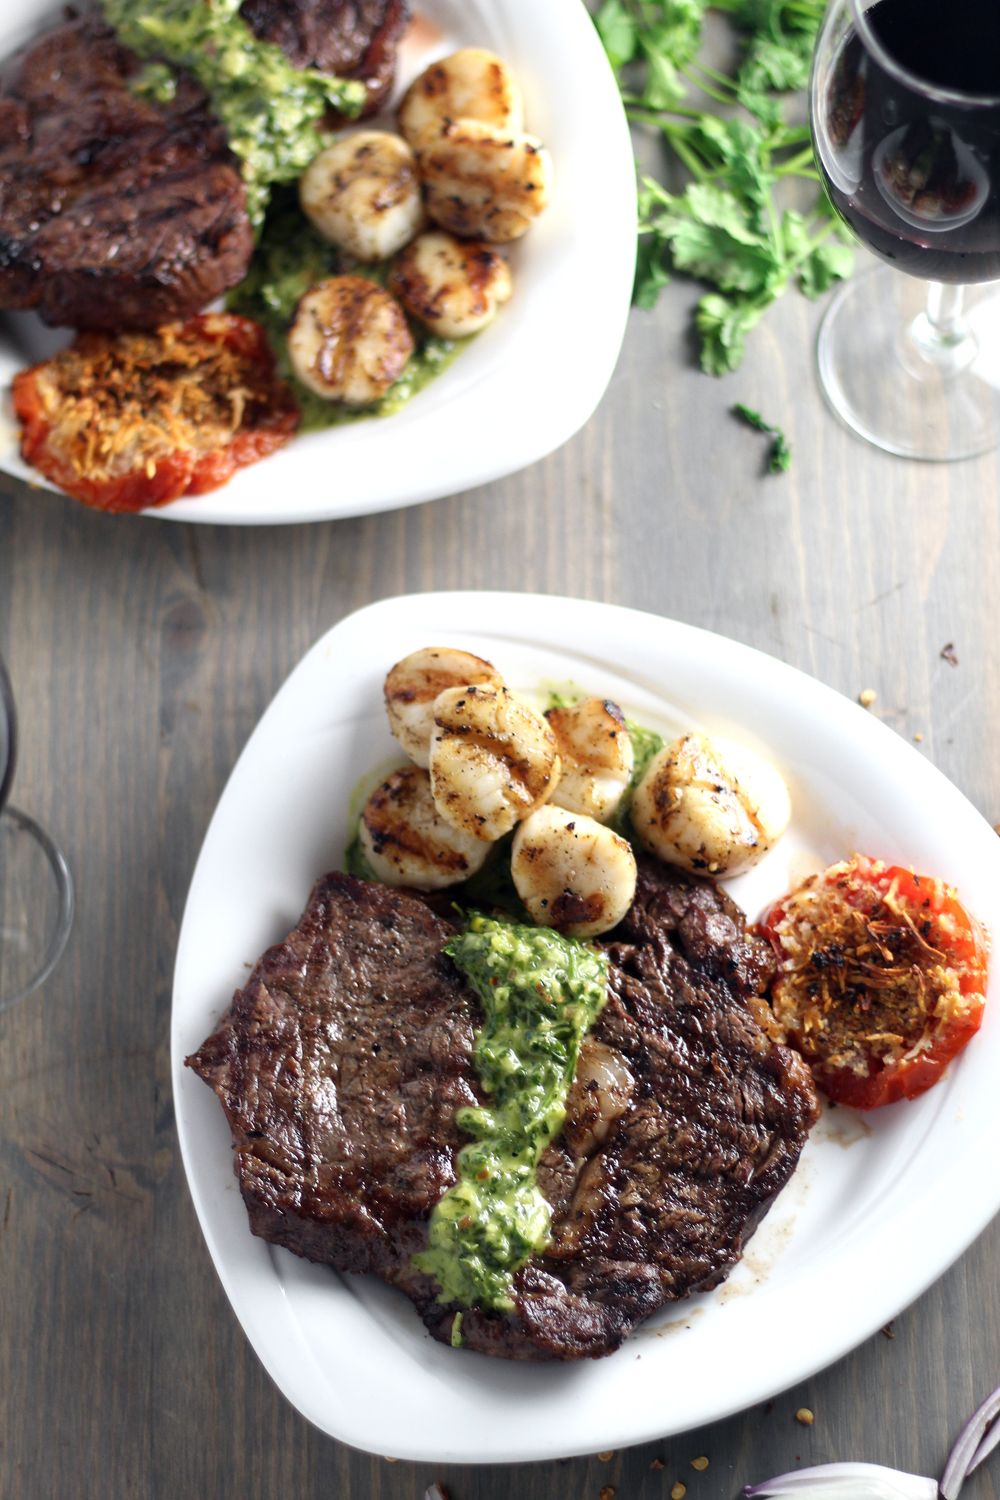 Date Night or Fate Night, Surf and Turf for Two is the recipe you must make for someone special. Extra touches? Wine, candlelight and Cilantro Chimichurri.